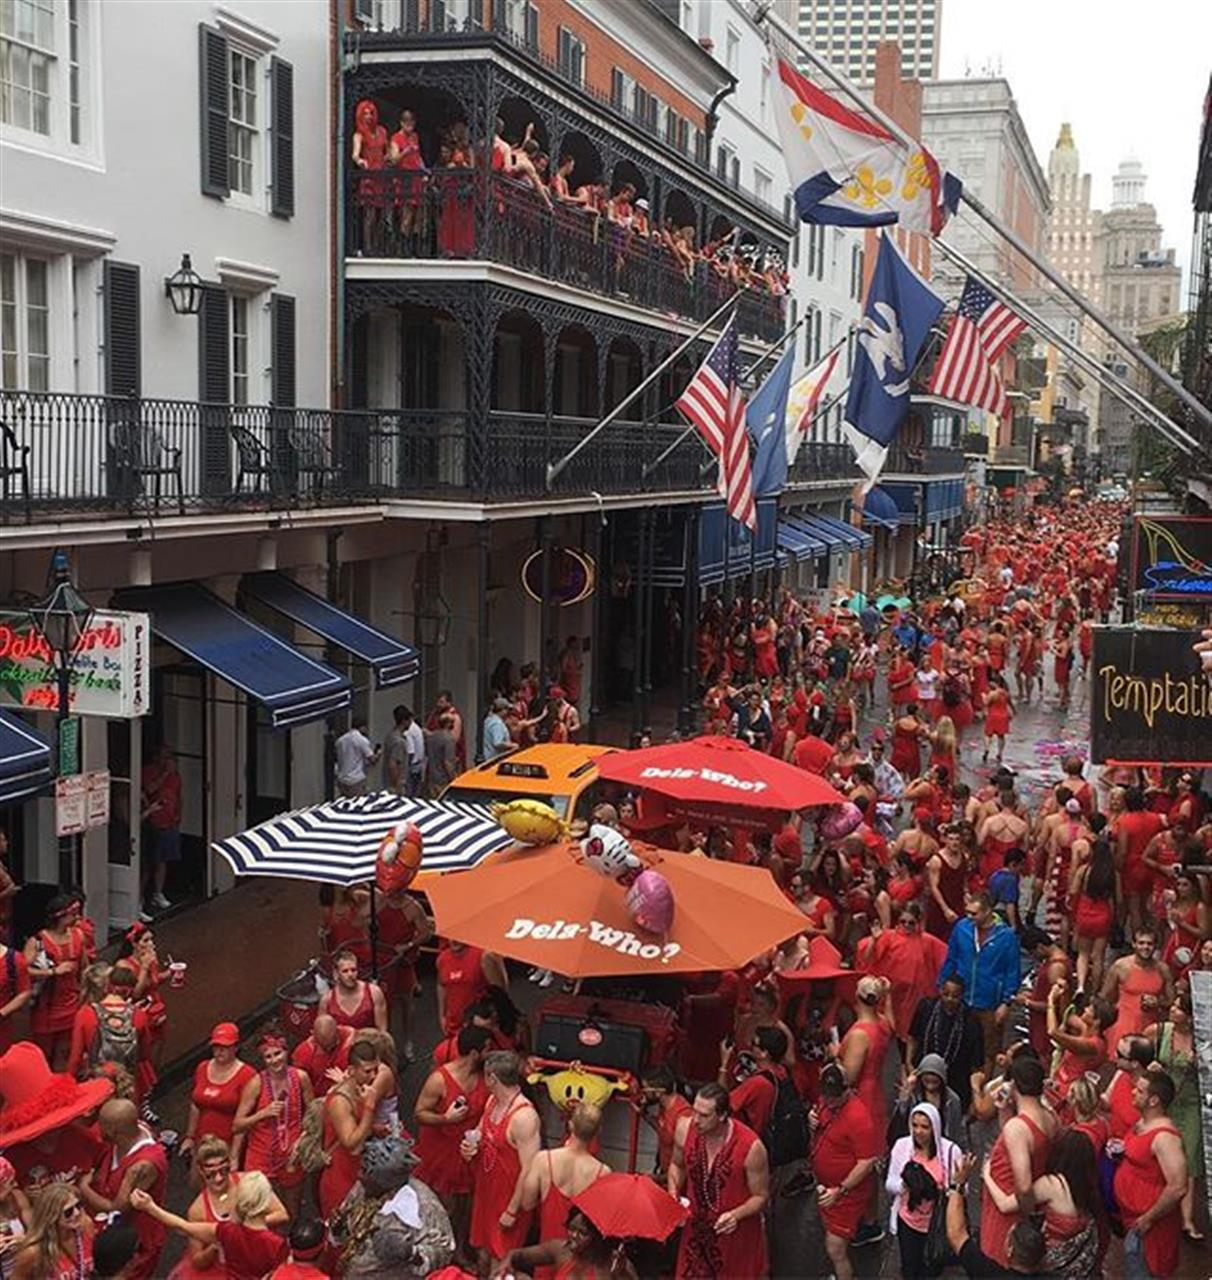 Rain or shine, one of the best days of the year in #NewOrleans #RedDressRun